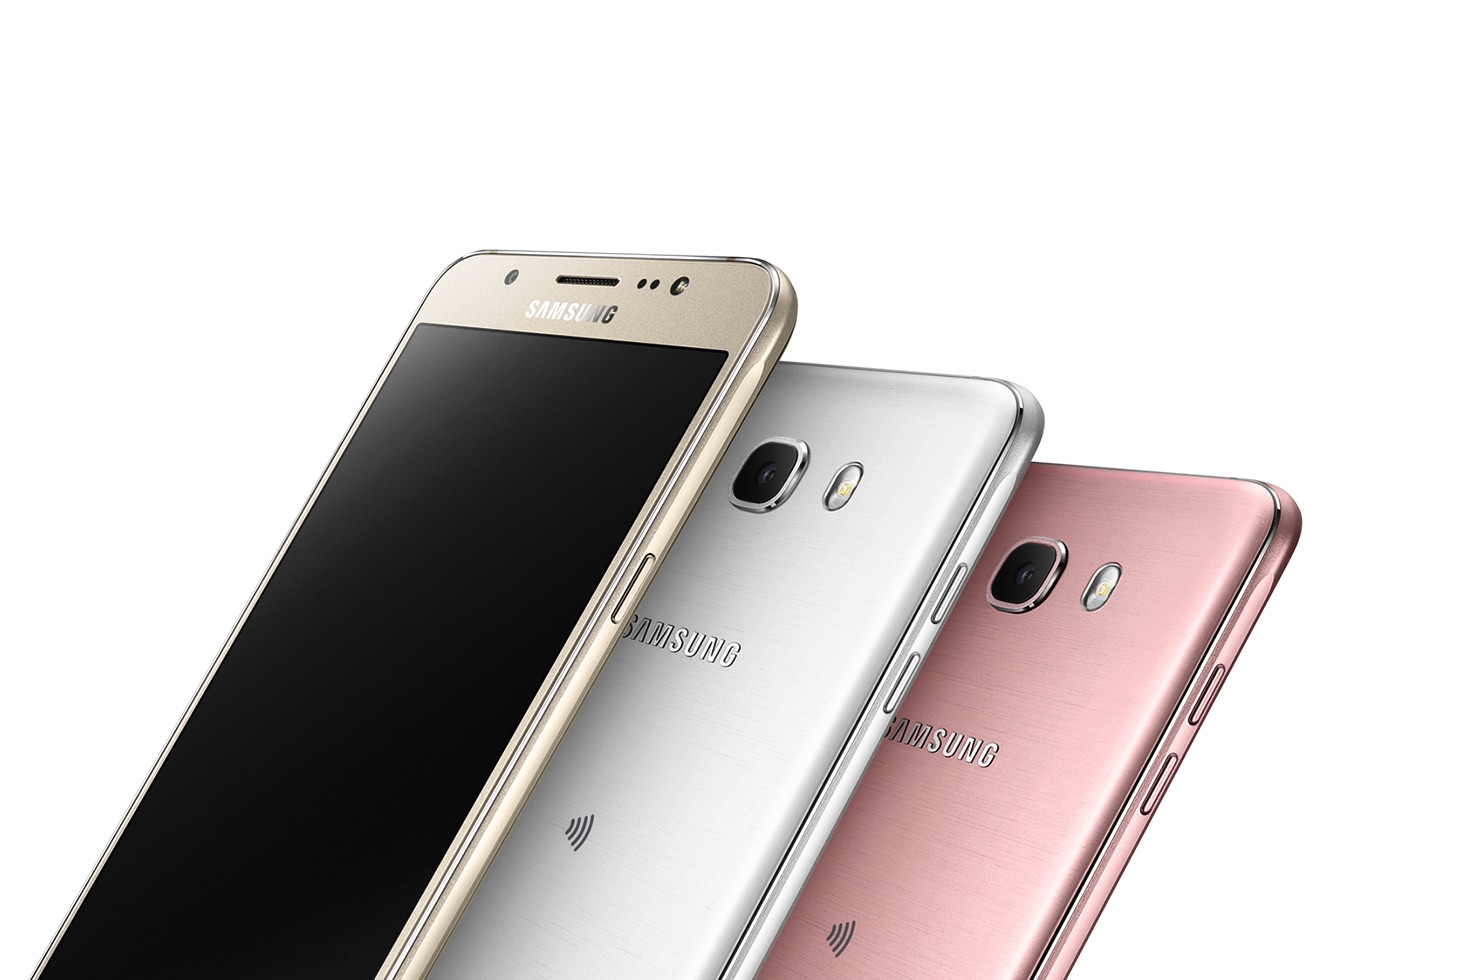 Samsung Galaxy J2 Prime, J5(2016) and C5 receive March security patch